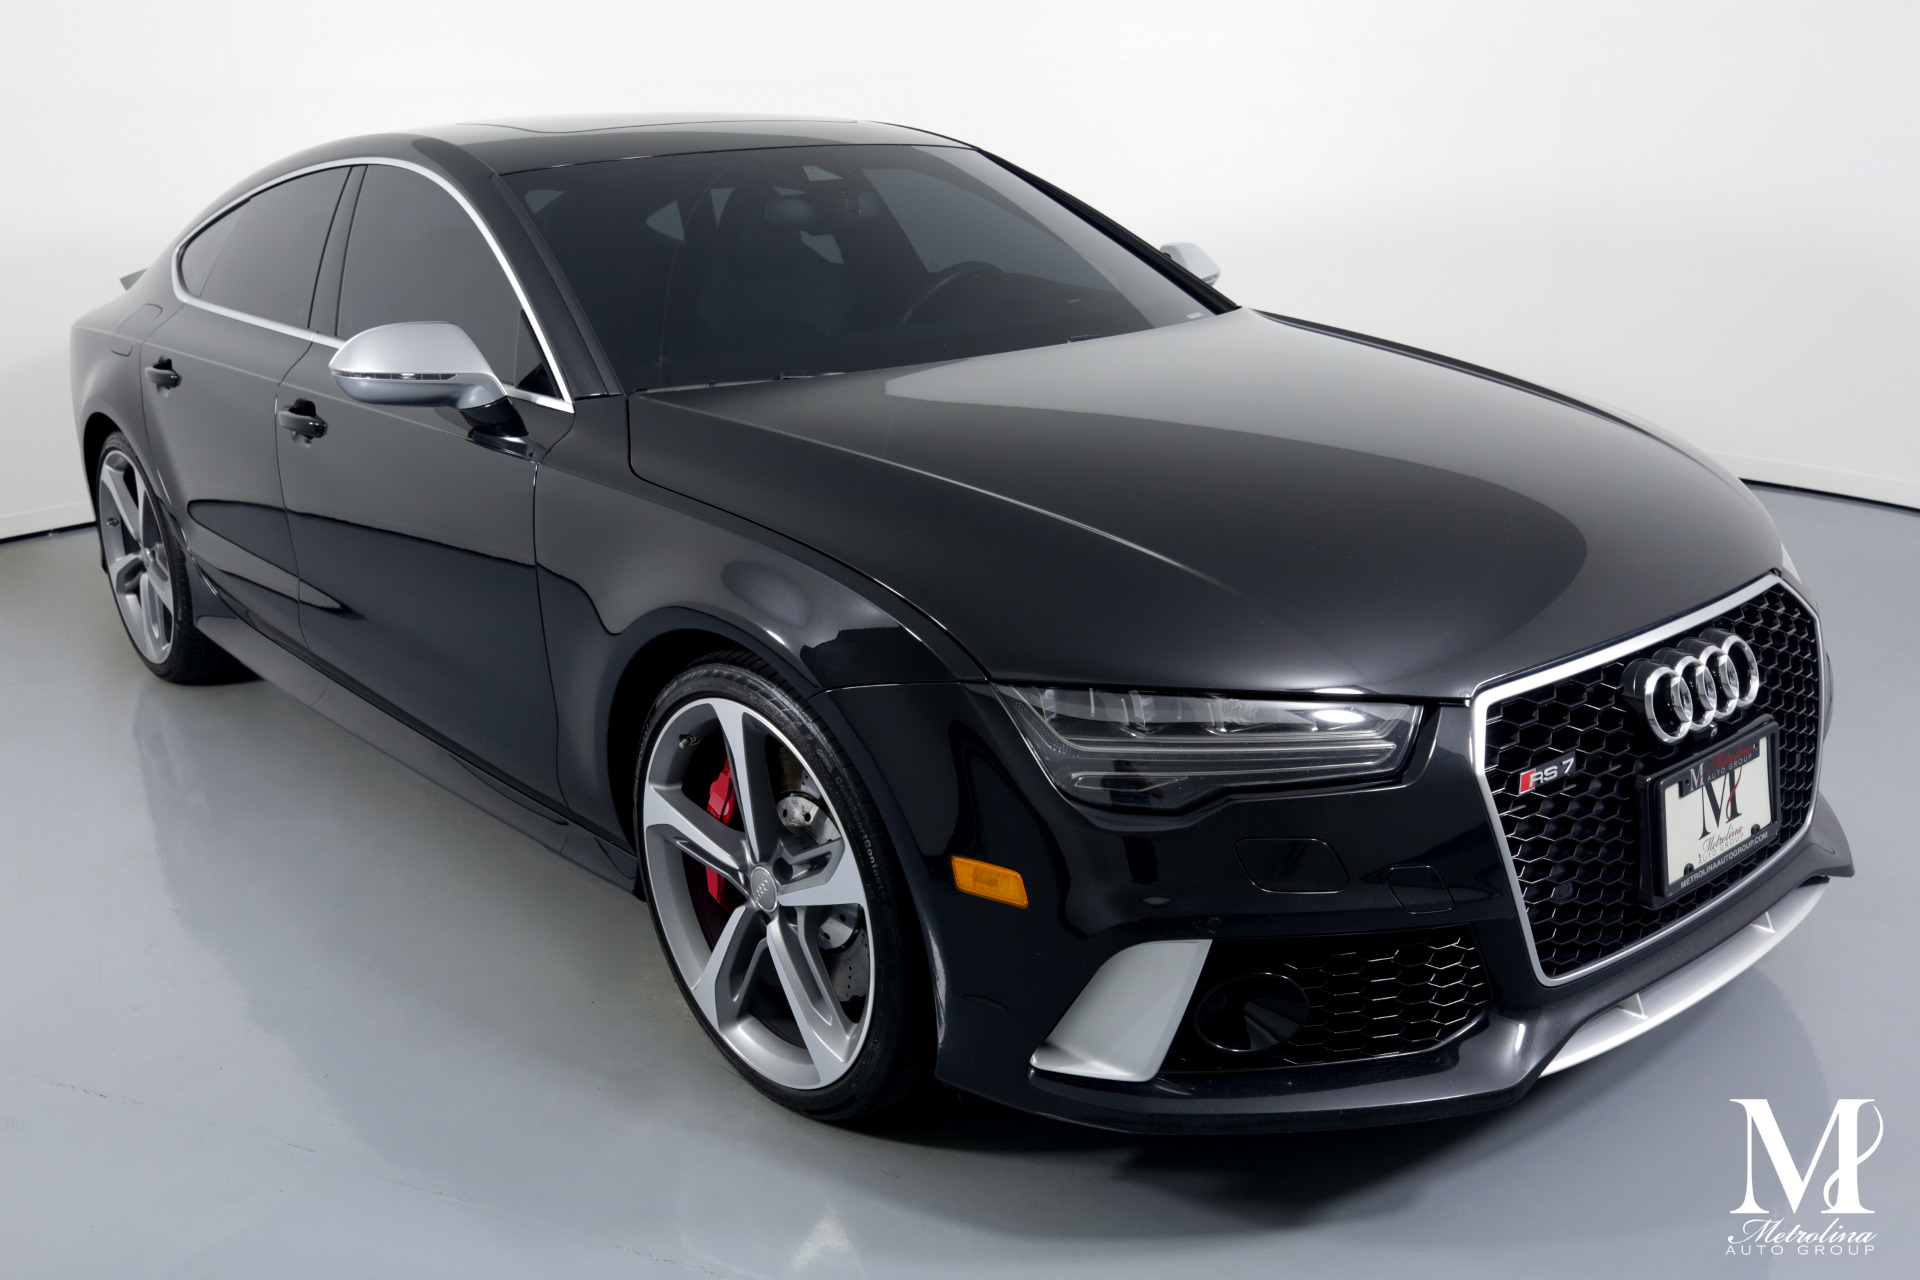 Used 2016 Audi RS 7 4.0T quattro Prestige for sale $68,456 at Metrolina Auto Group in Charlotte NC 28217 - 2